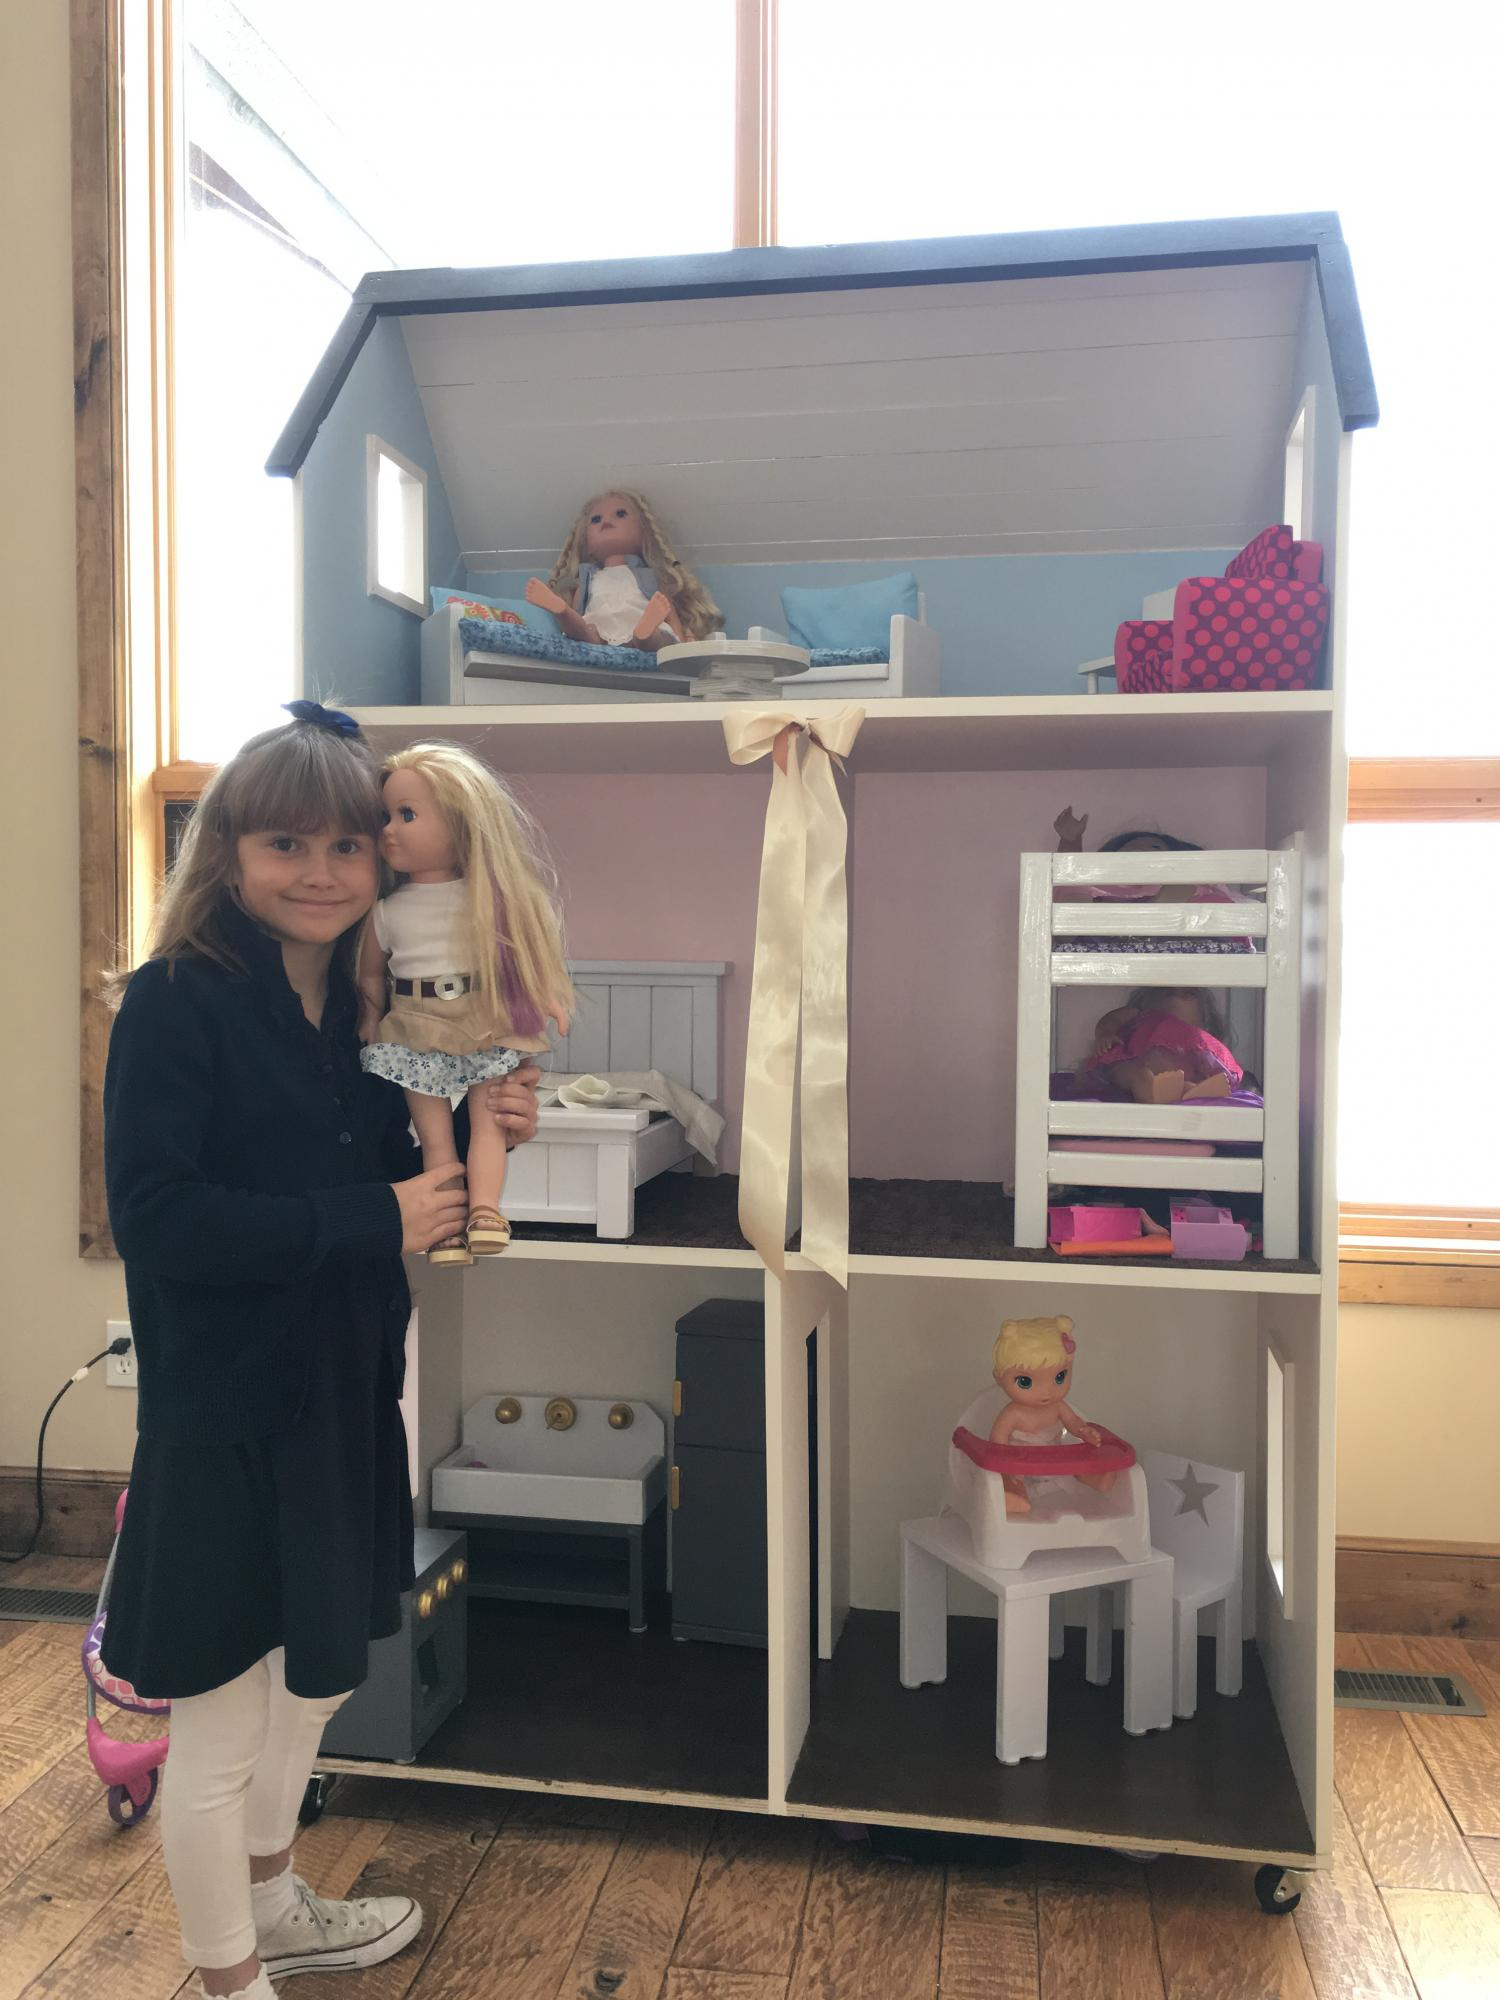 Doll House Plans for 18 Inch Dolls Elegant American Girl 3 Story Doll House and Furniture